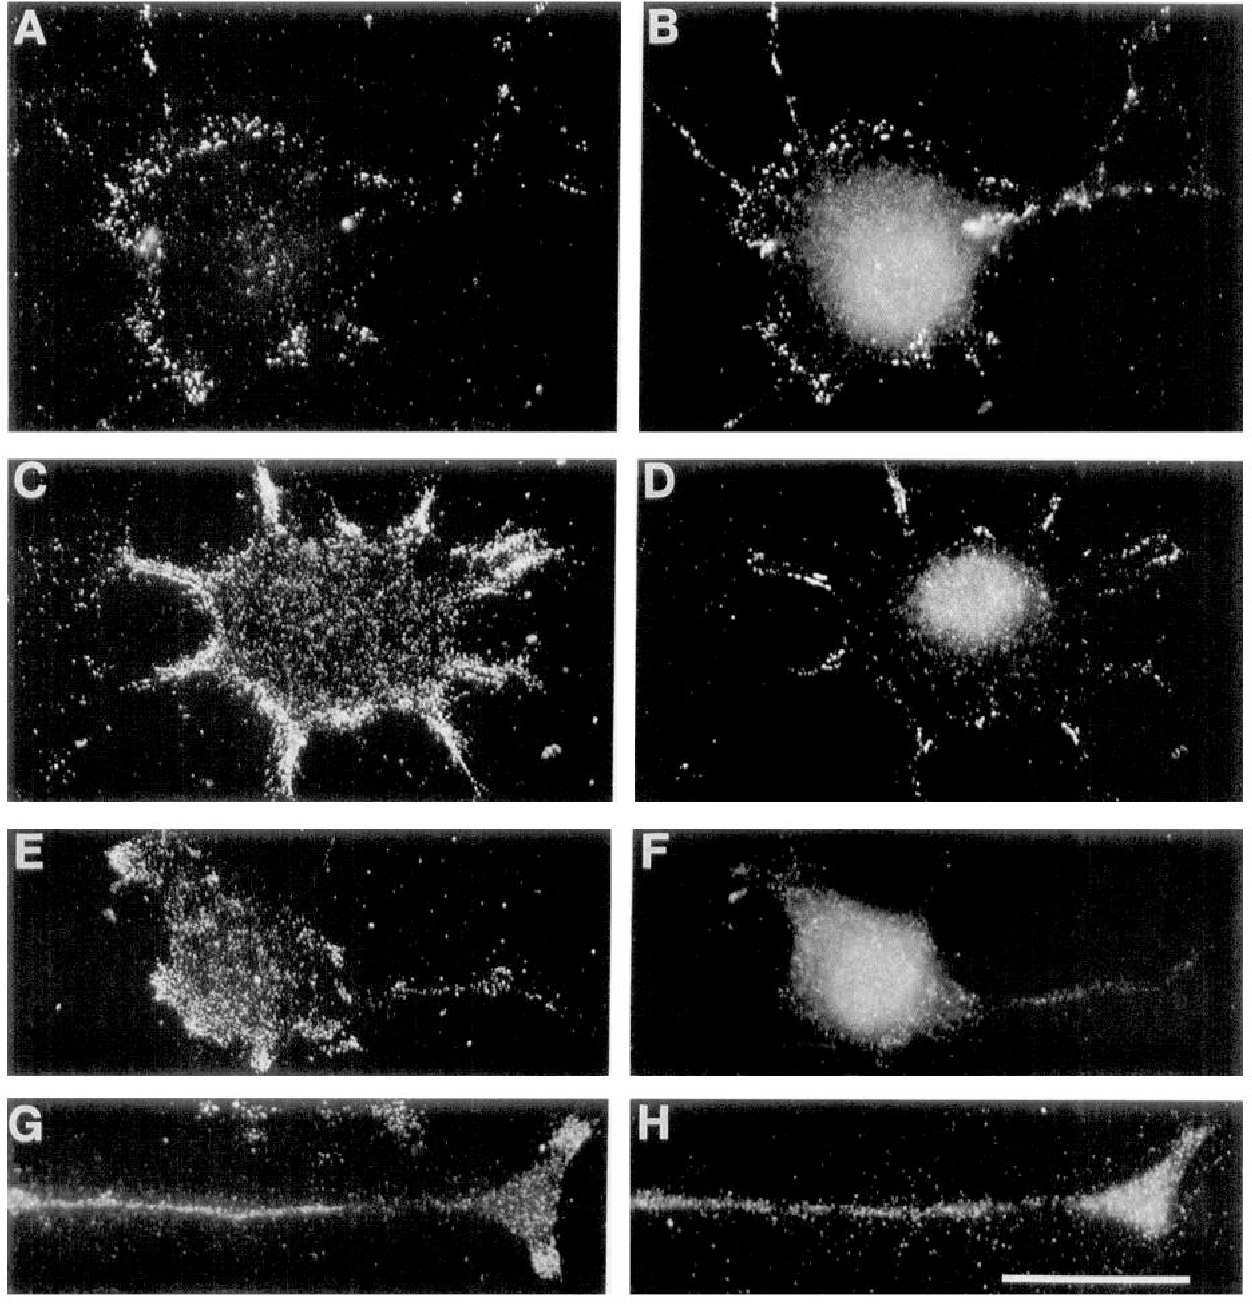 Figure 7. Distribution of pl integrin, talin, and vinculin in cytoskeletal ghosts: double immunofluorescence using the anti-81 (4, C, E, and G) and anti-vinculin (B and D) or anti-talin (F and H) antibodies. Note the codistribution of 81 and vinculin in point contacts at the cell margin and neurite tips, but an absence of colocalization in the central region of the cell. Talin shows a reciprocal pattern to vinculin, but there is not obvious colocalization with 81 in point contacts. Scale bar, 20 pm.